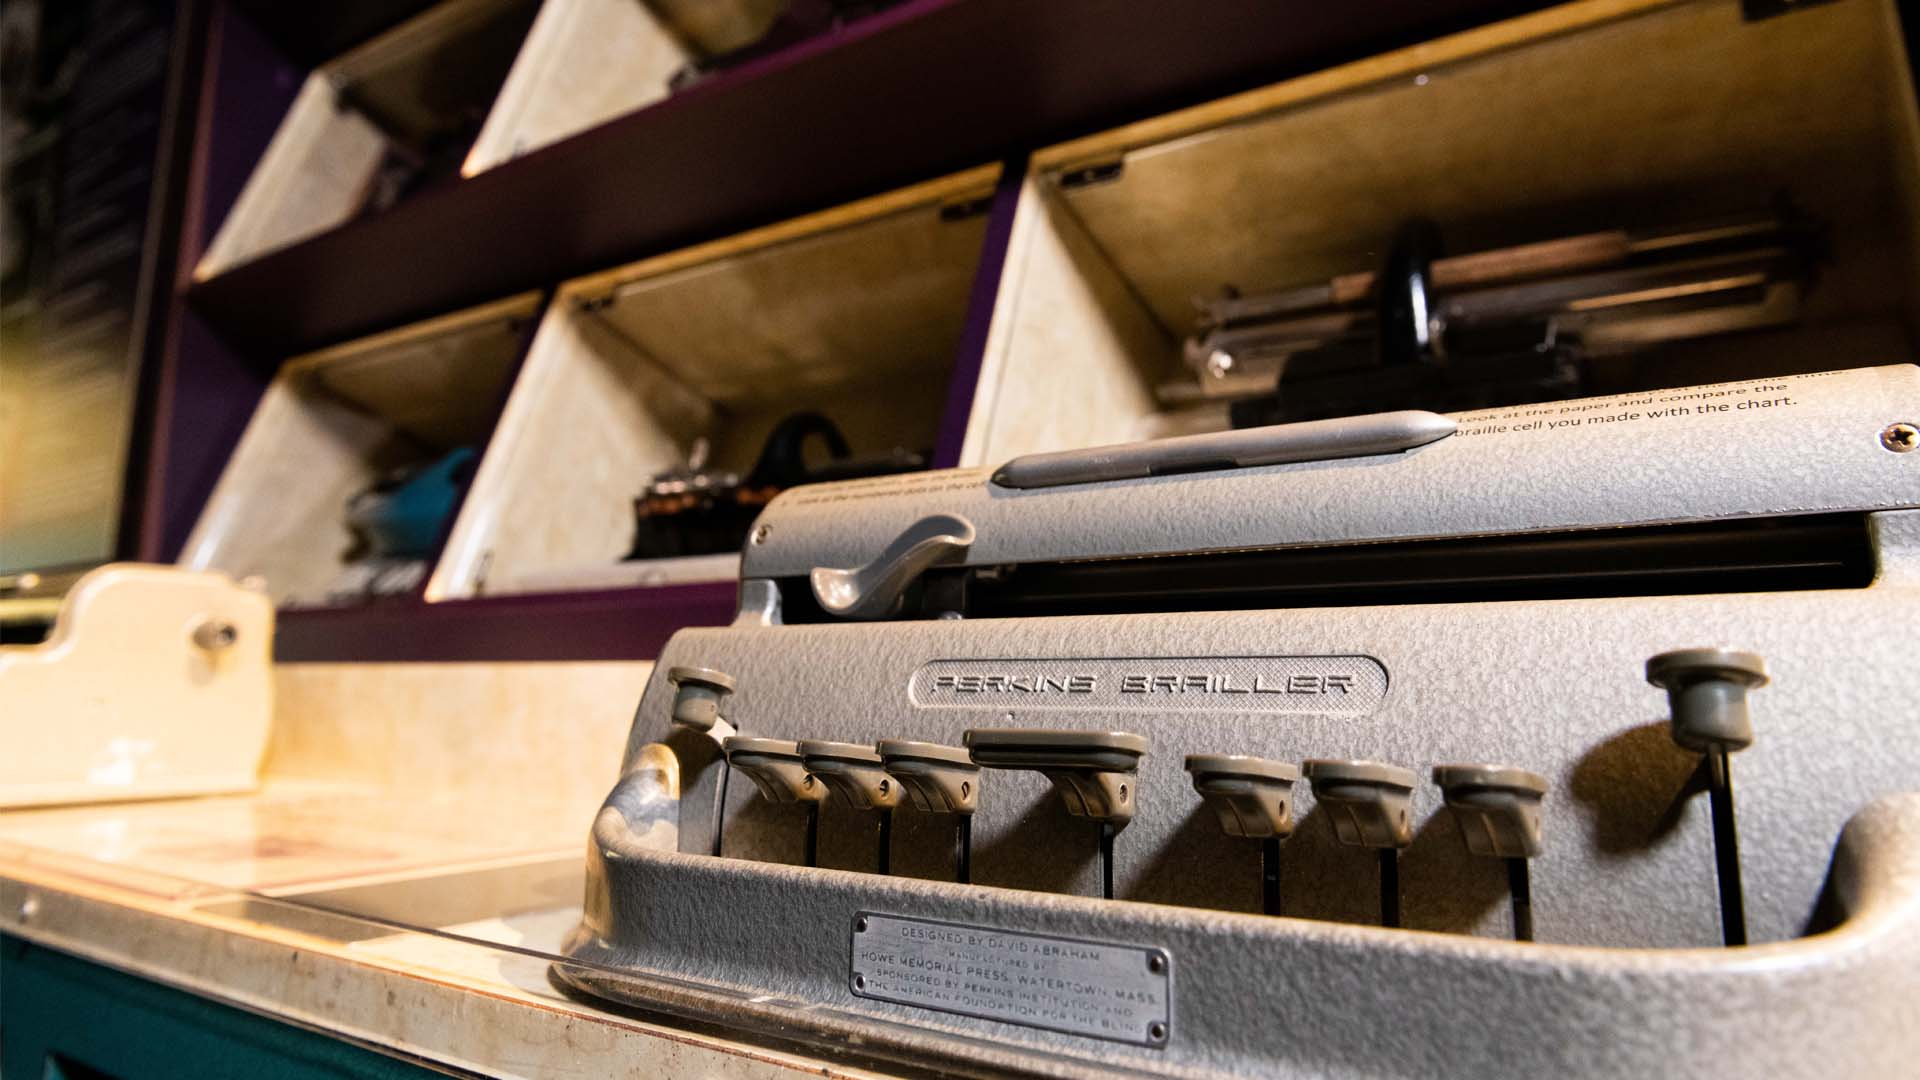 Closeup view of the keyboard of a Perkins Brailler in front of a case full of other historic braillewriters